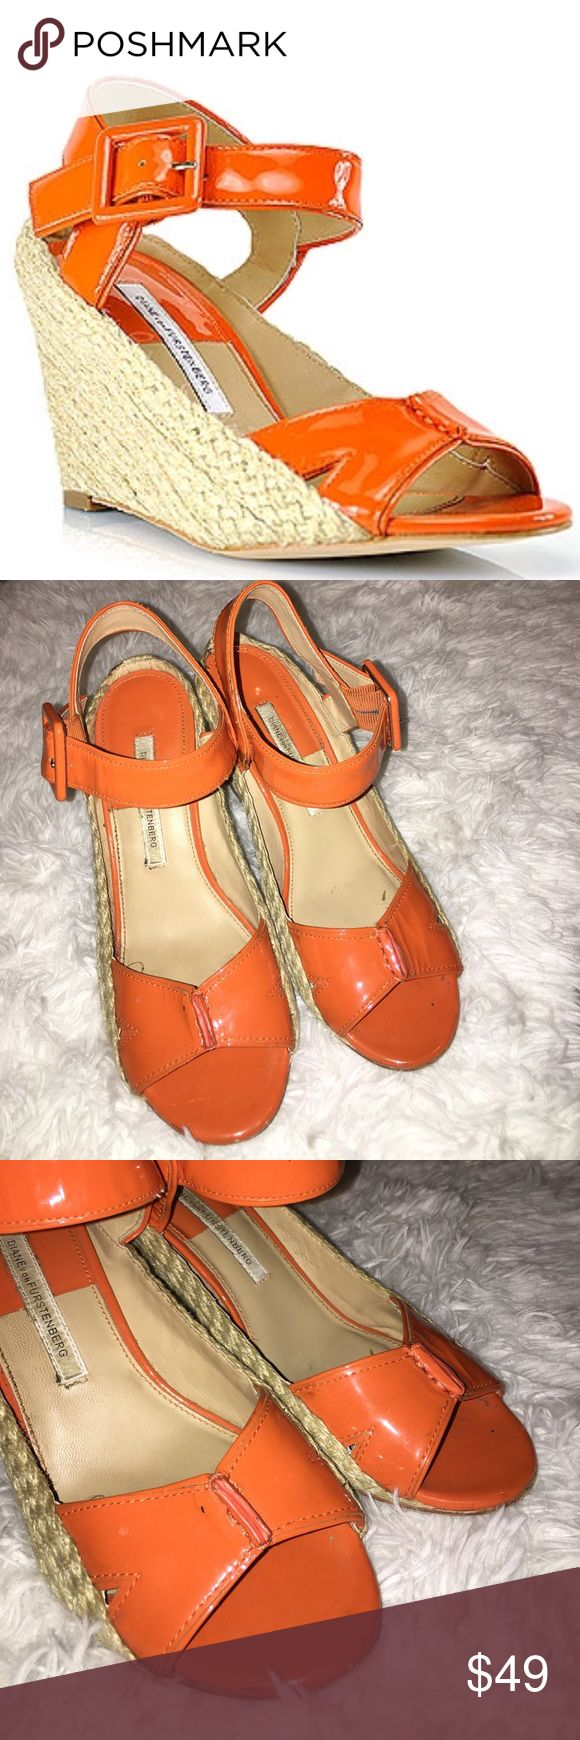 diane von furstenberg orange espadrille shoes 7.5 This is a pair of diane von furstenberg orange espadrille wedge shoes in a 7.5, good used condition! I ship fast! Happy poshing friends! Diane Von Furstenberg Shoes Espadrilles